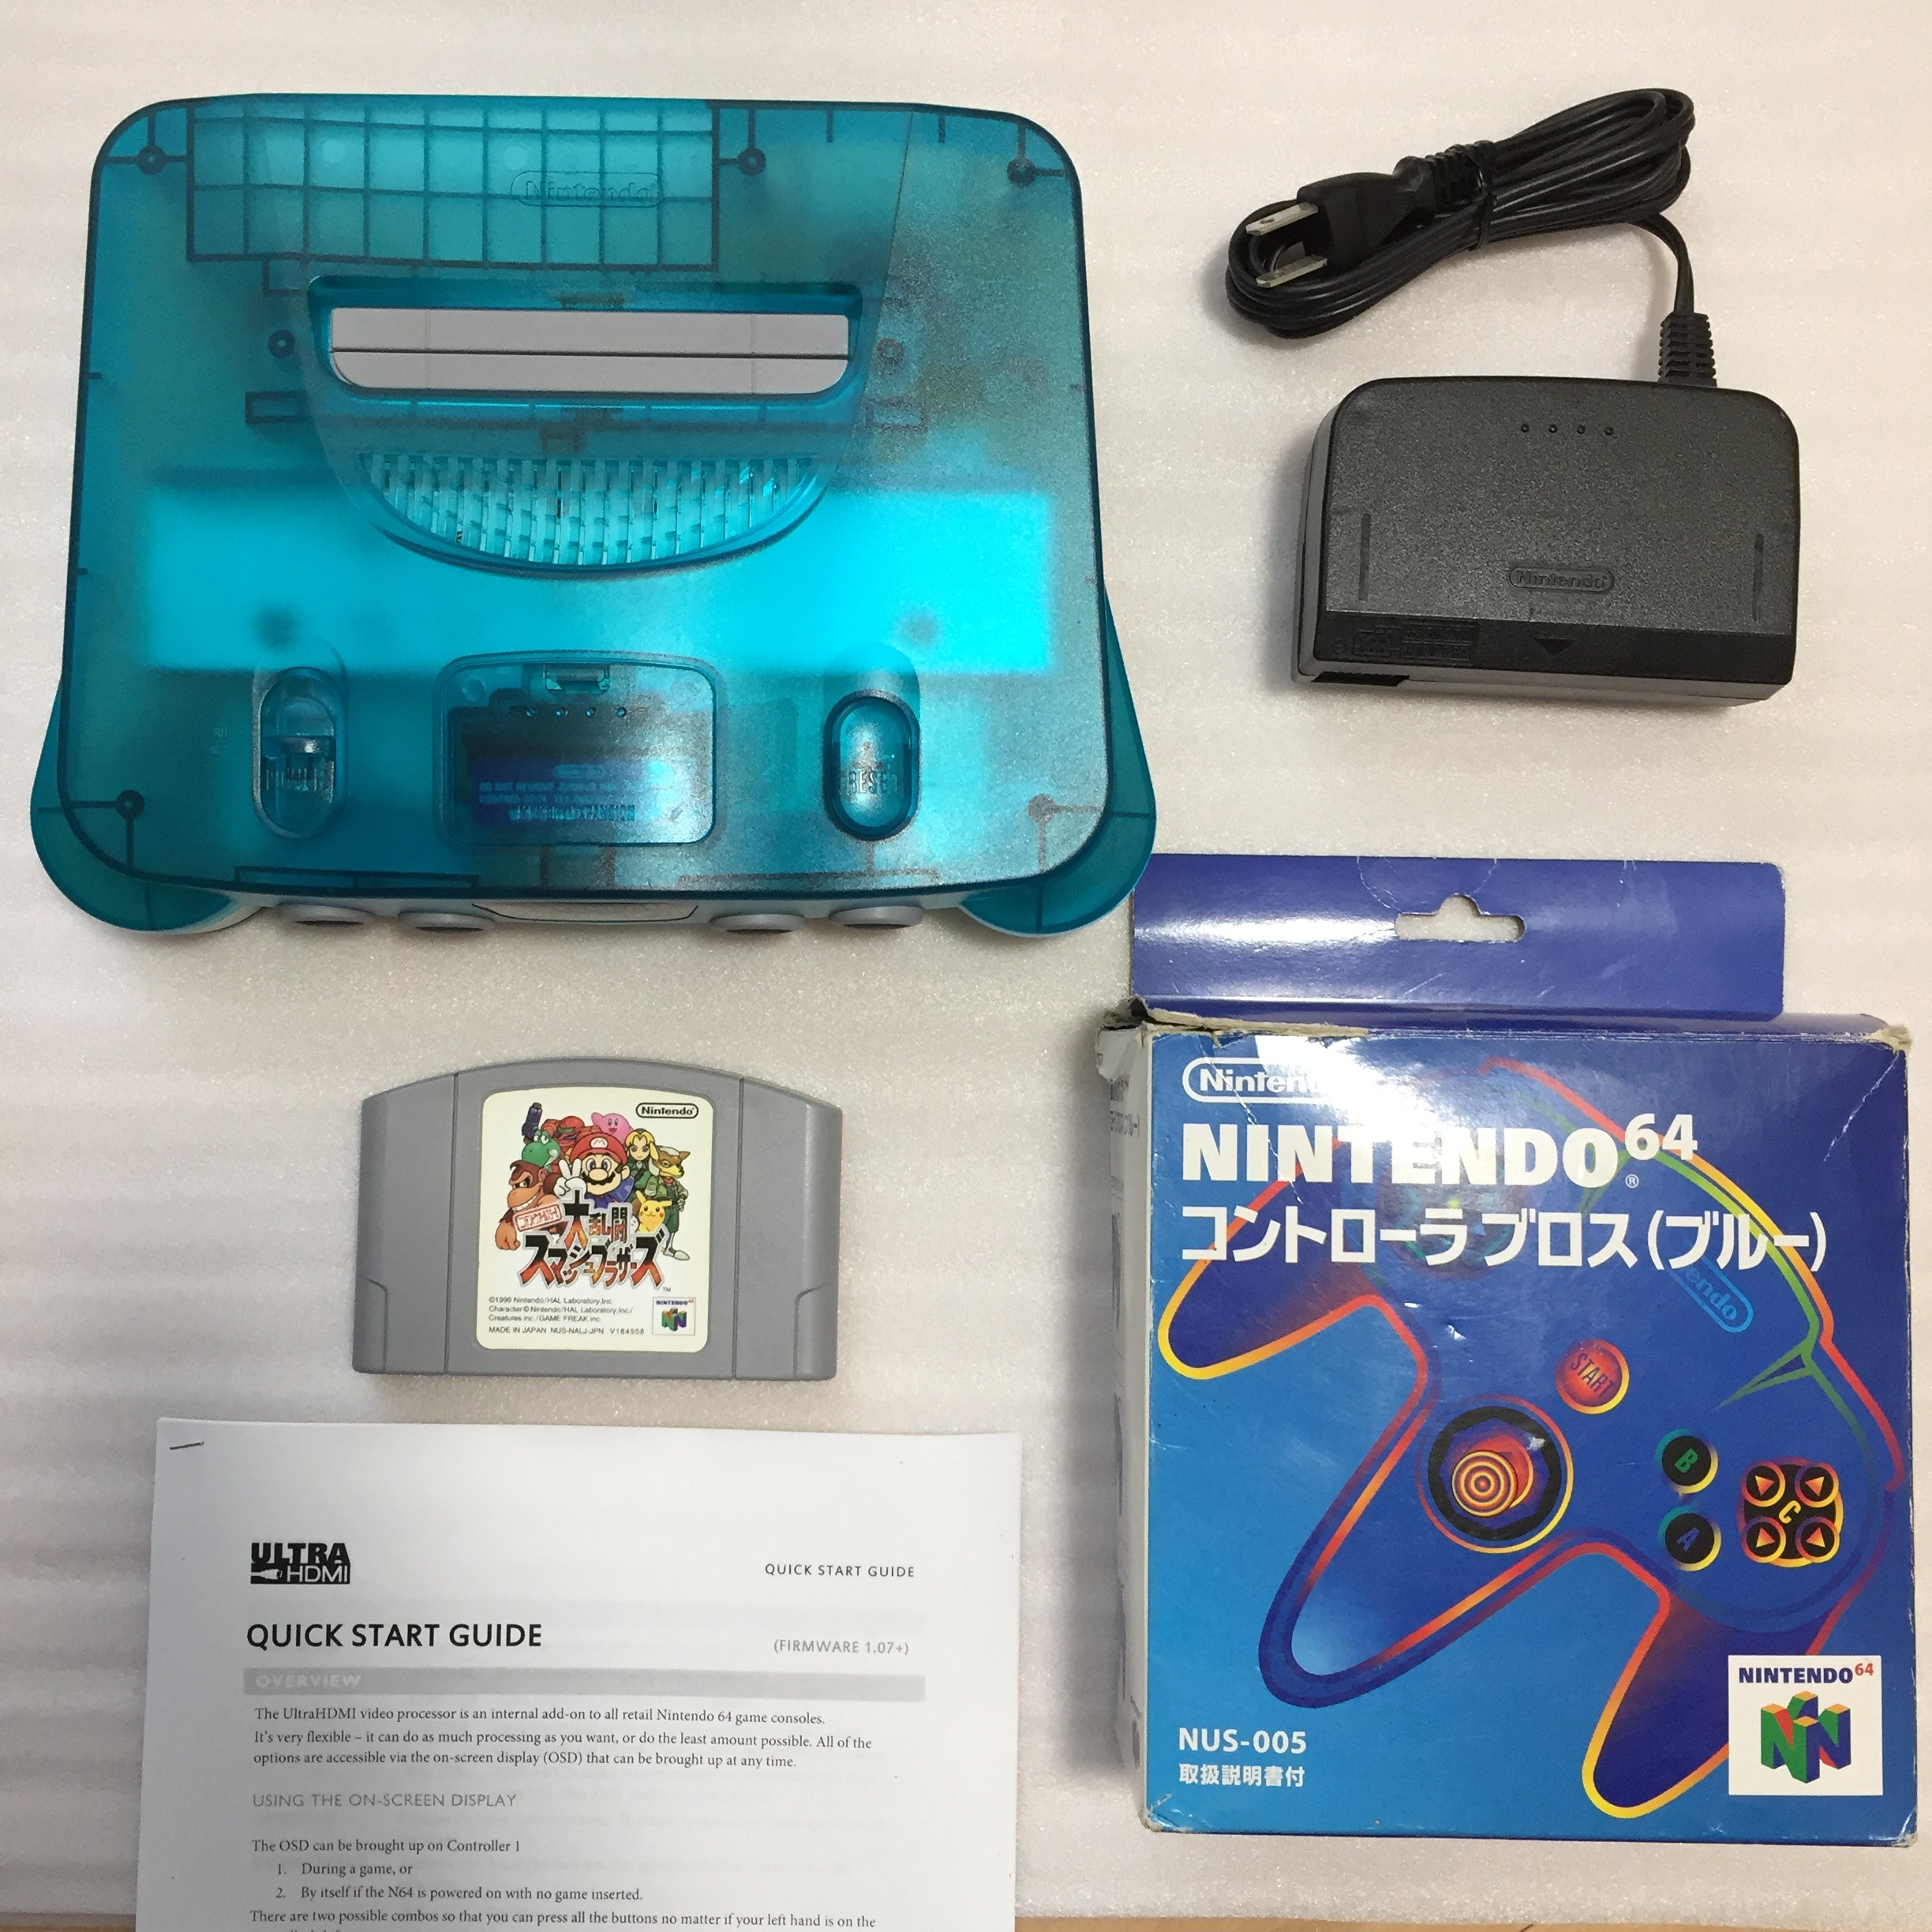 Clear blue Nintendo 64 set with ULTRA HDMI kit - compatible with JP ...